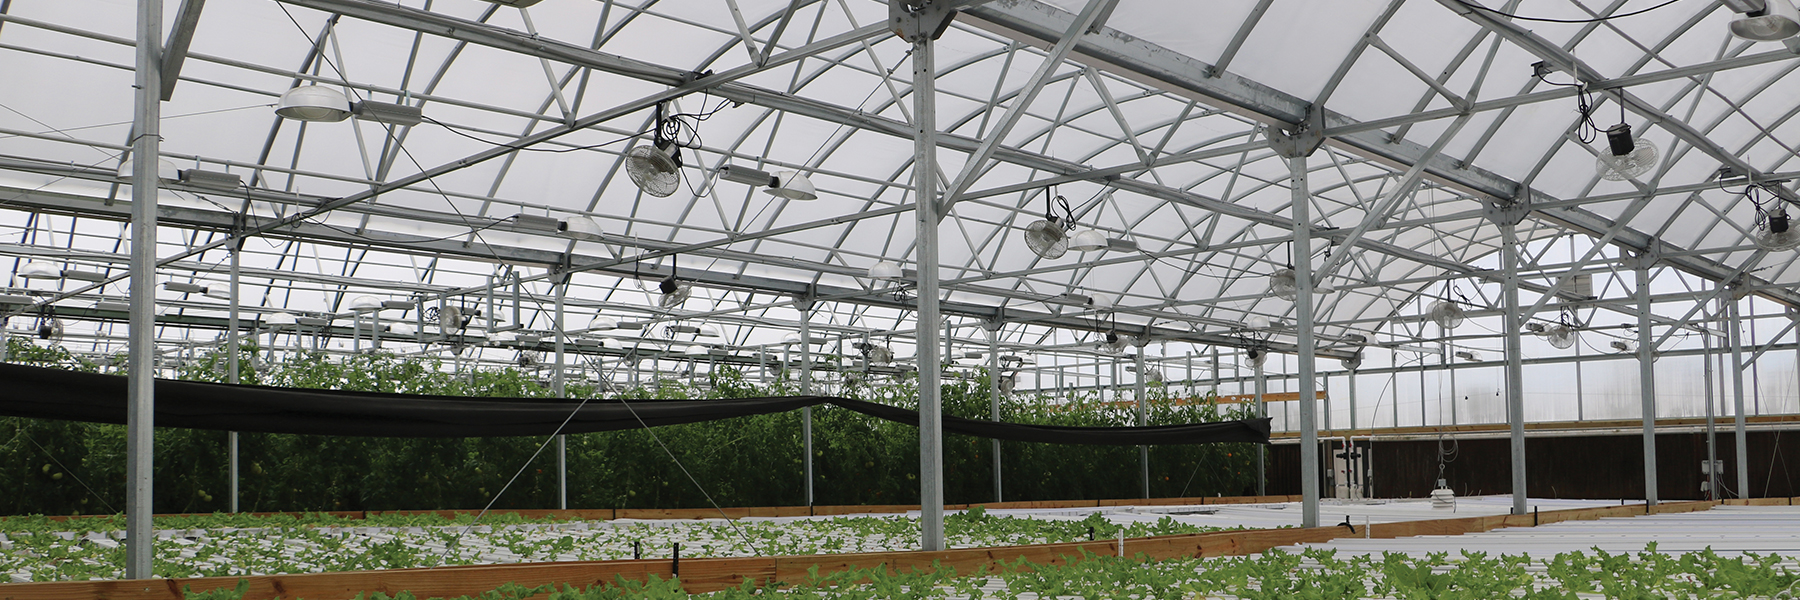 Ottumwa Greenhouse interior